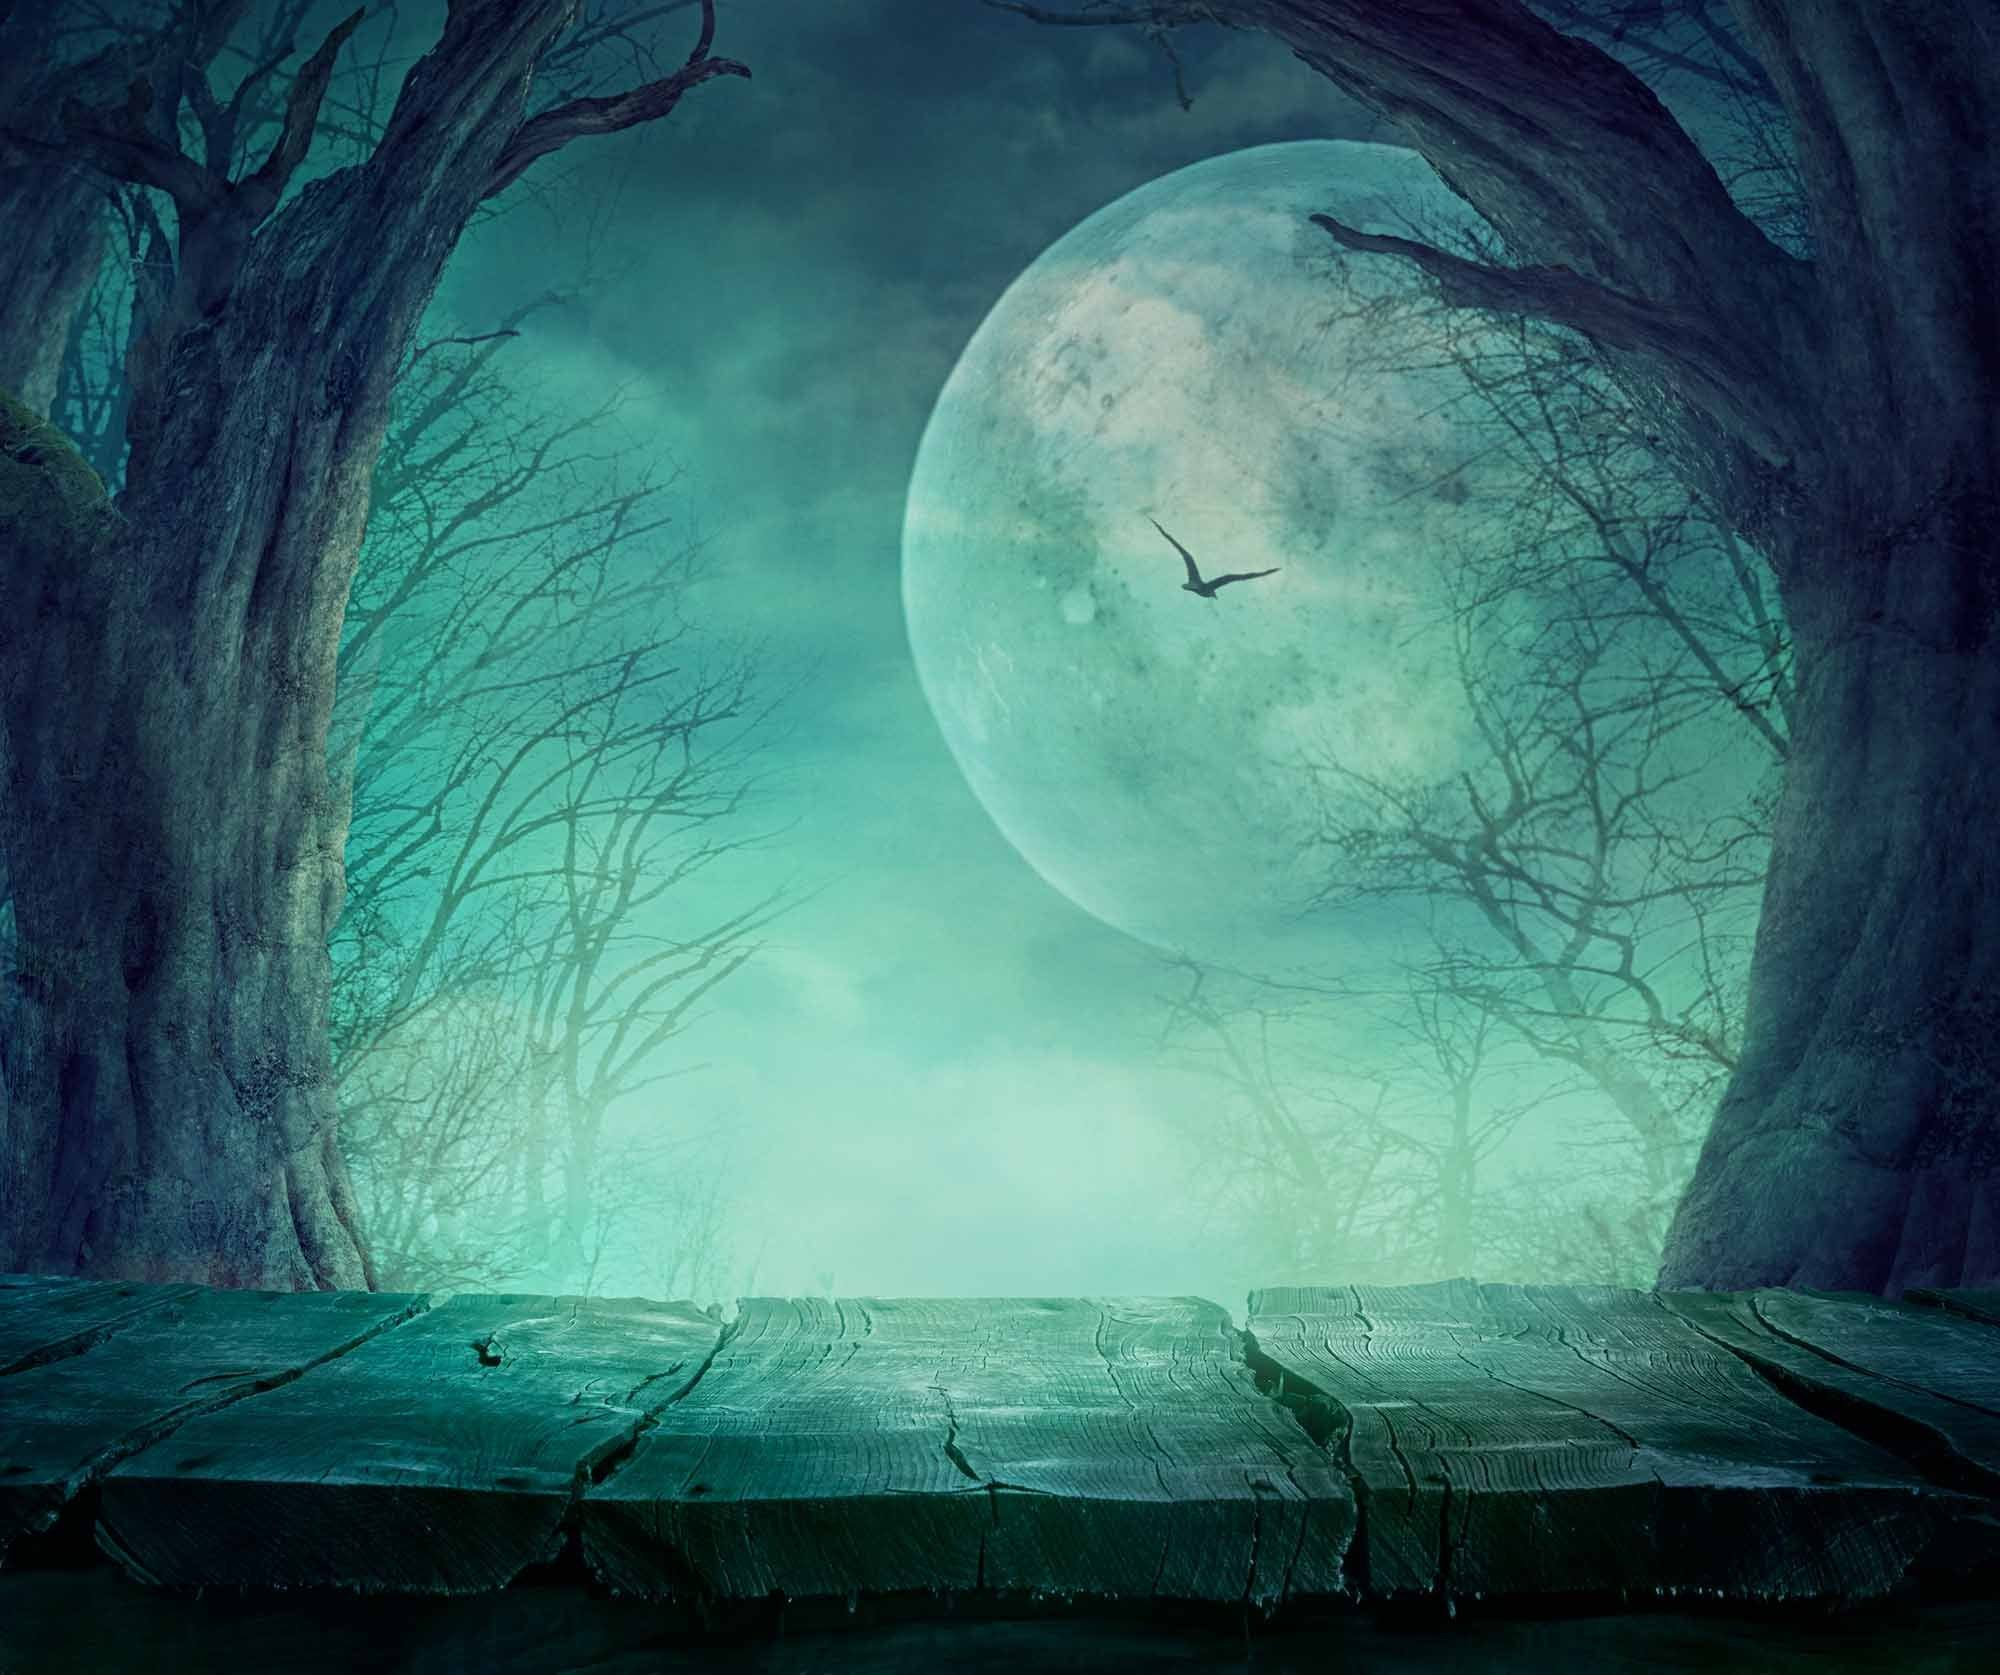 Eerie Night With Bat Dry Tree Background For Halloween